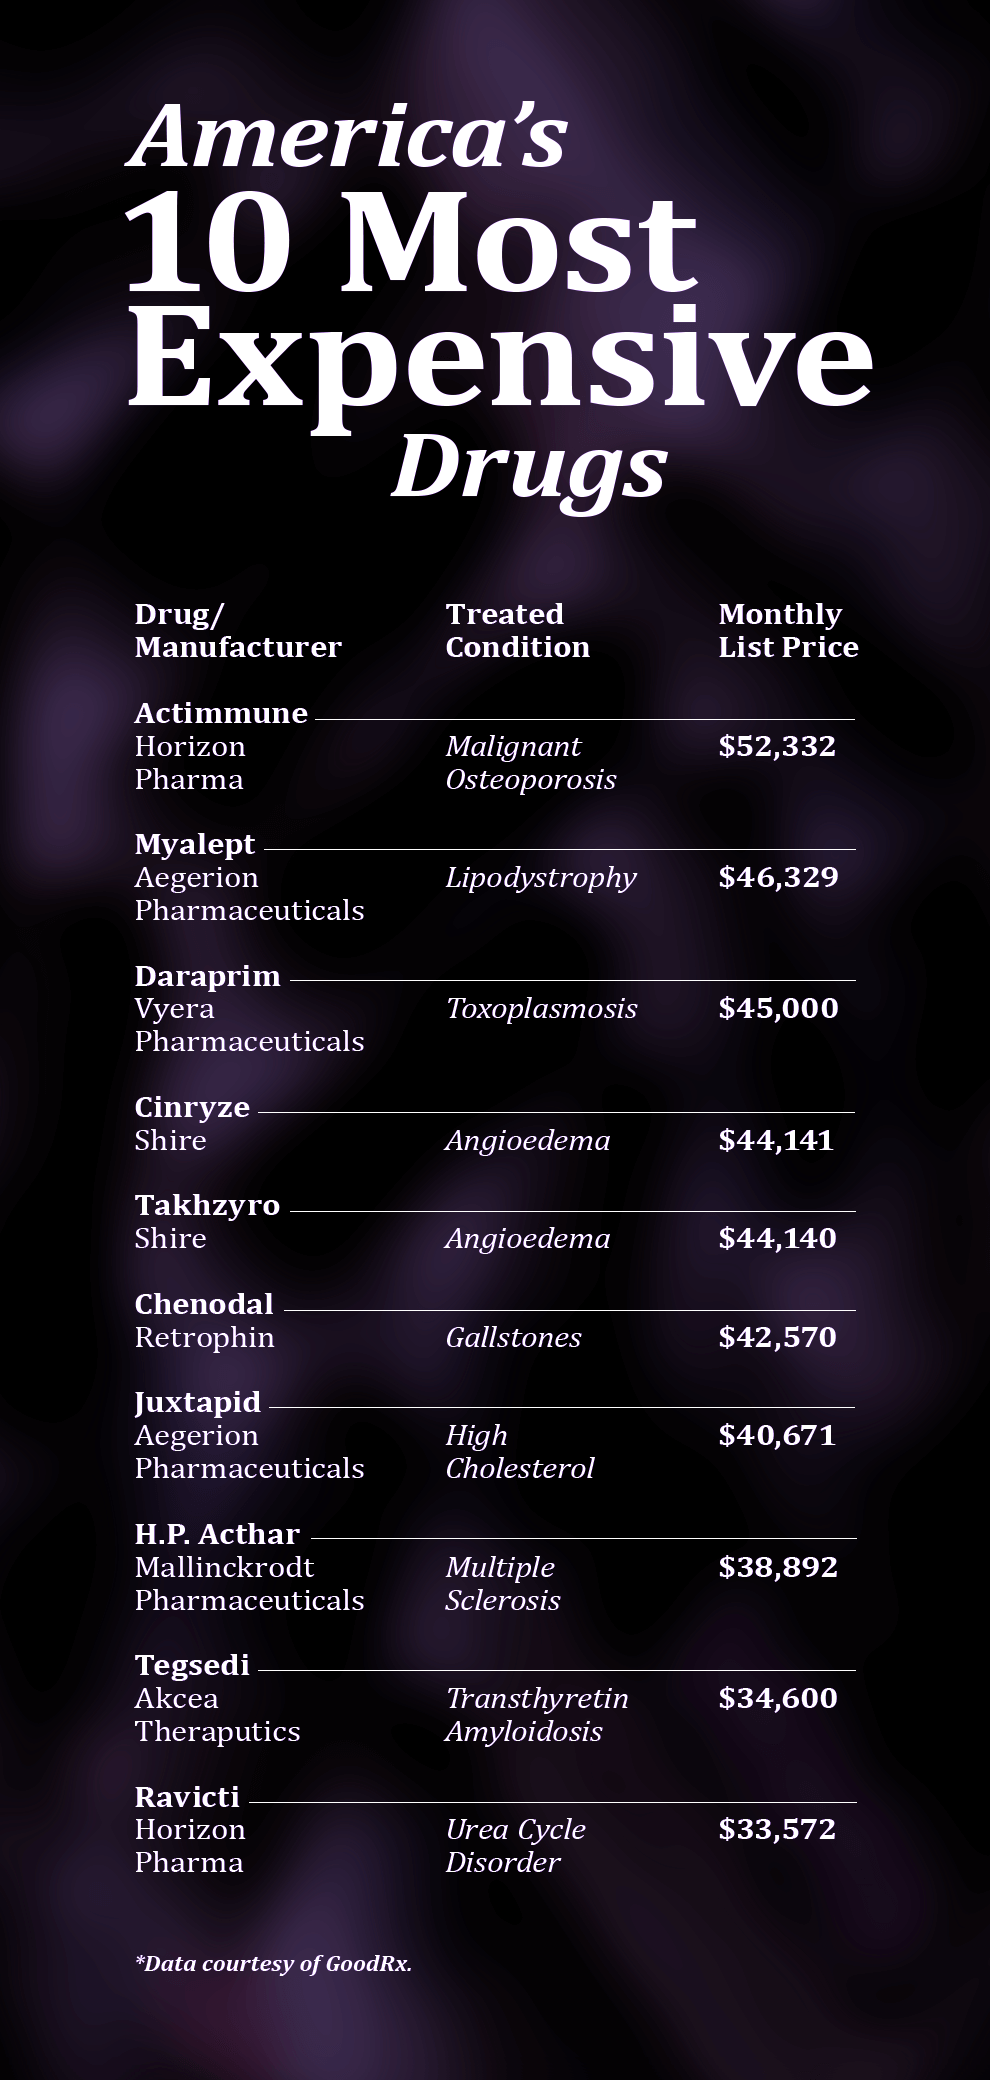 infographic showing america's 10 most expensive drugs